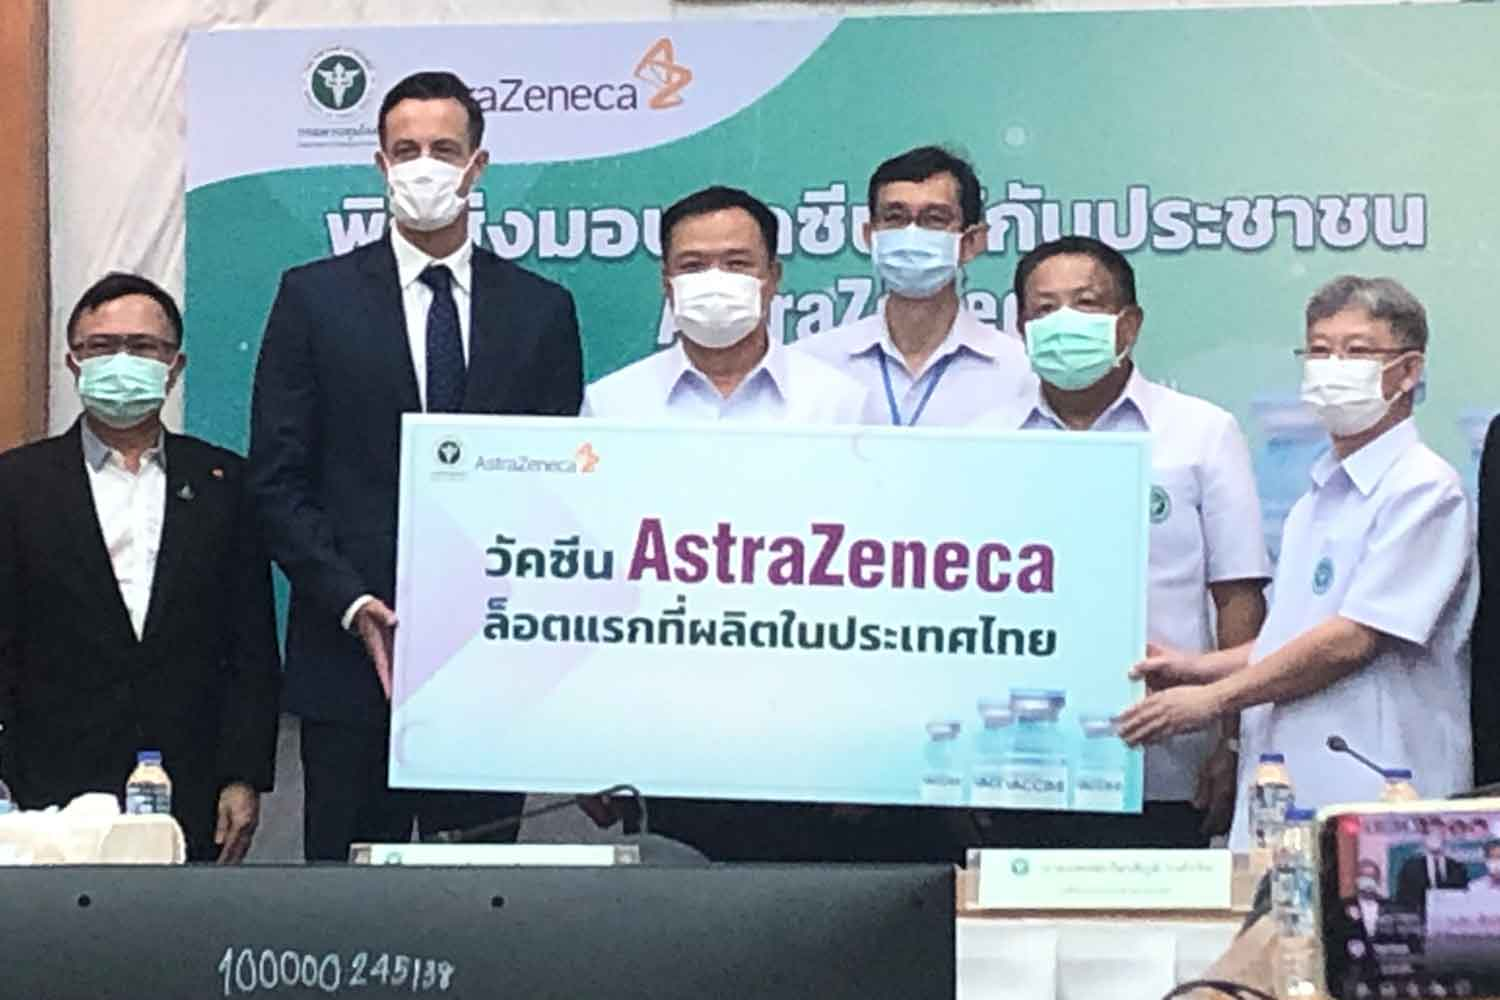 The Ministry of Public Health receives the first 1.8 million doses of AstraZeneca's Covid-19 vaccine produced by Siam Bioscience, on Friday. (Photo supplied)